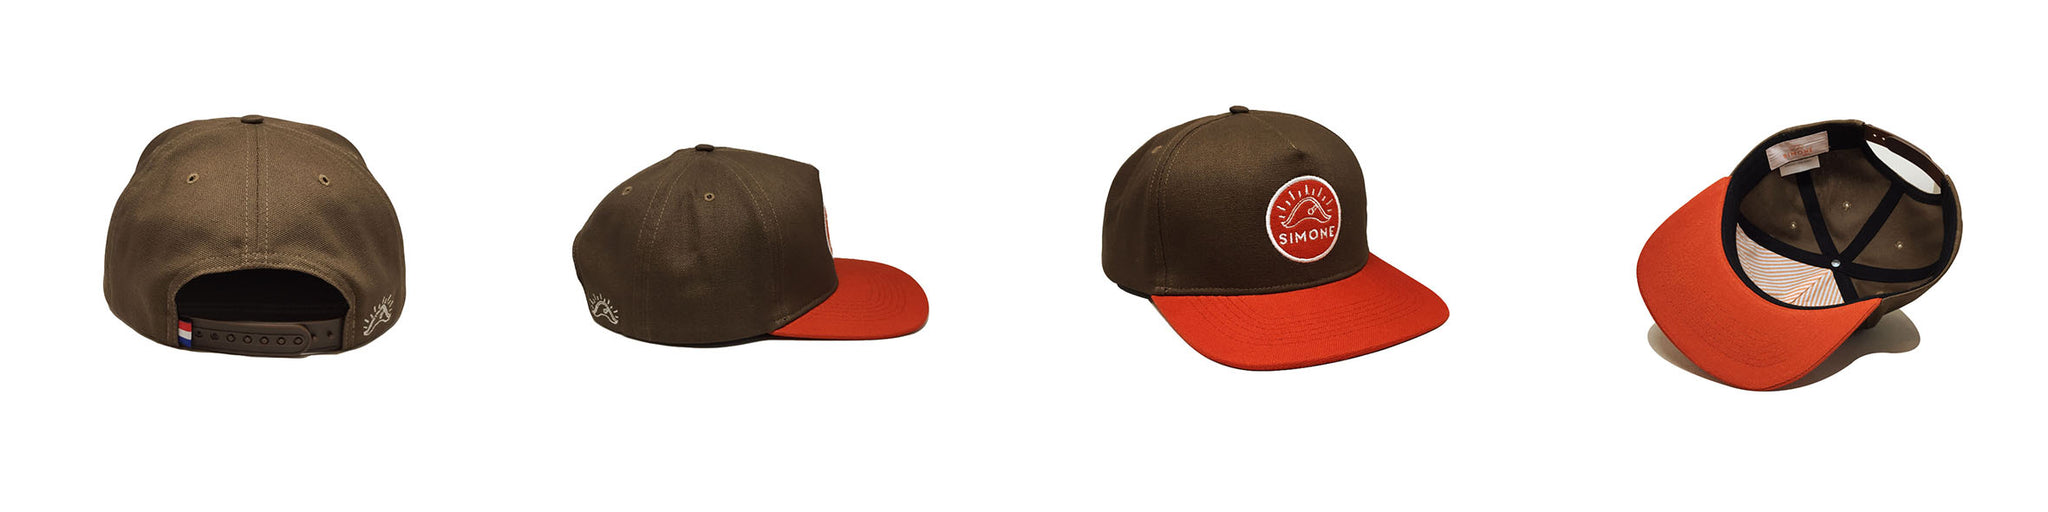 Casquette Simone Headwear Snapback Marron Orange Patch